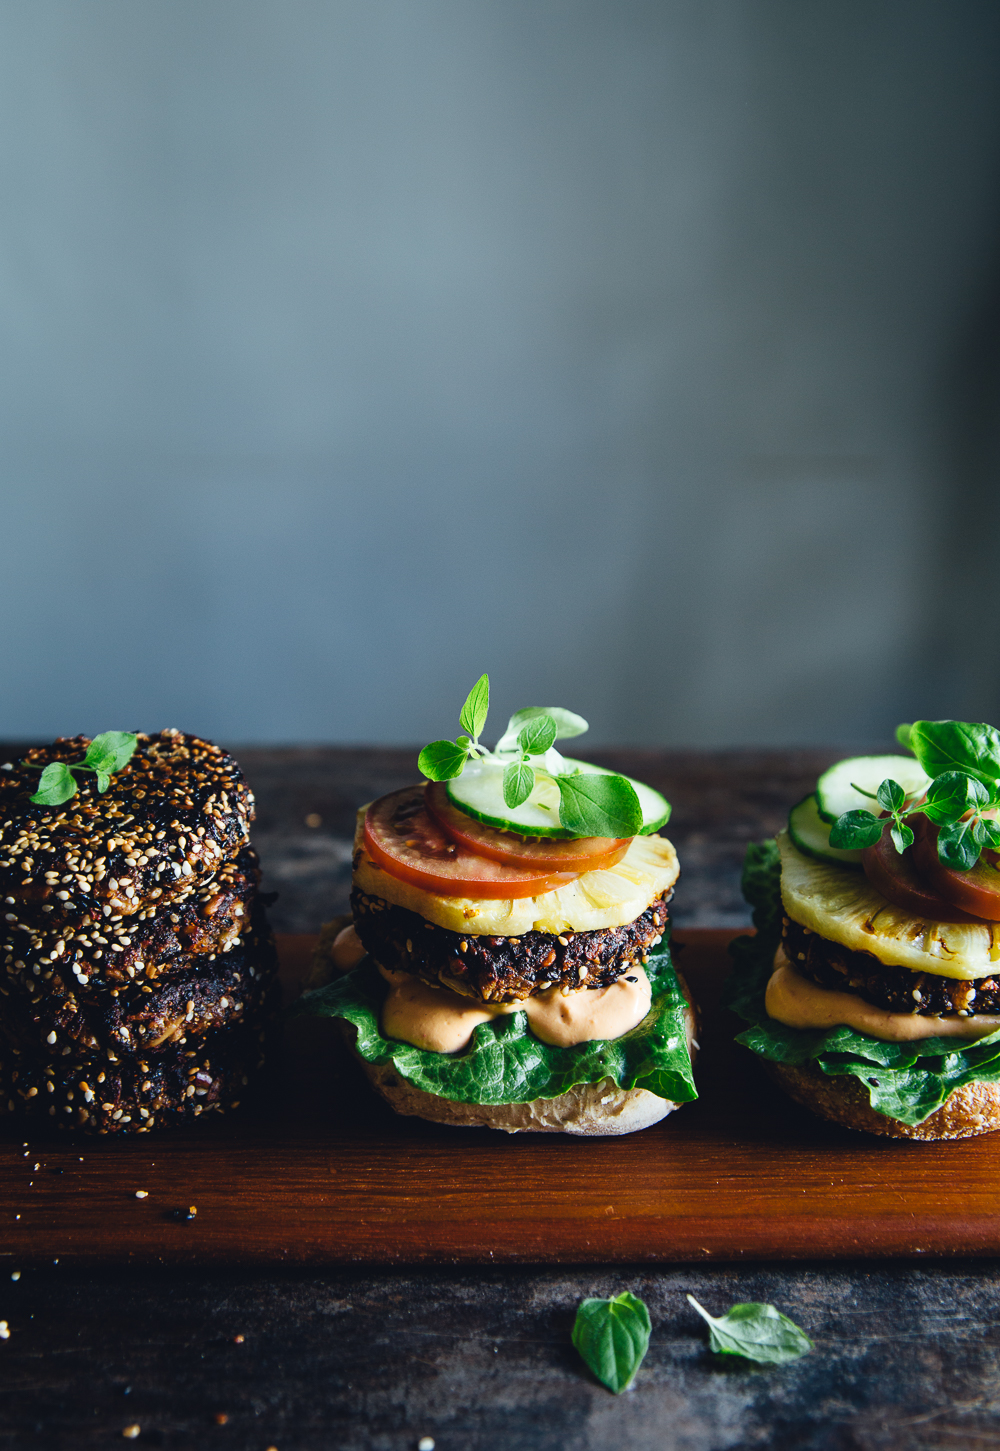 Vegan Black Rice Burgers with Grilled Pineapple & Cashew Chili Mayo | Cashew Kitchen